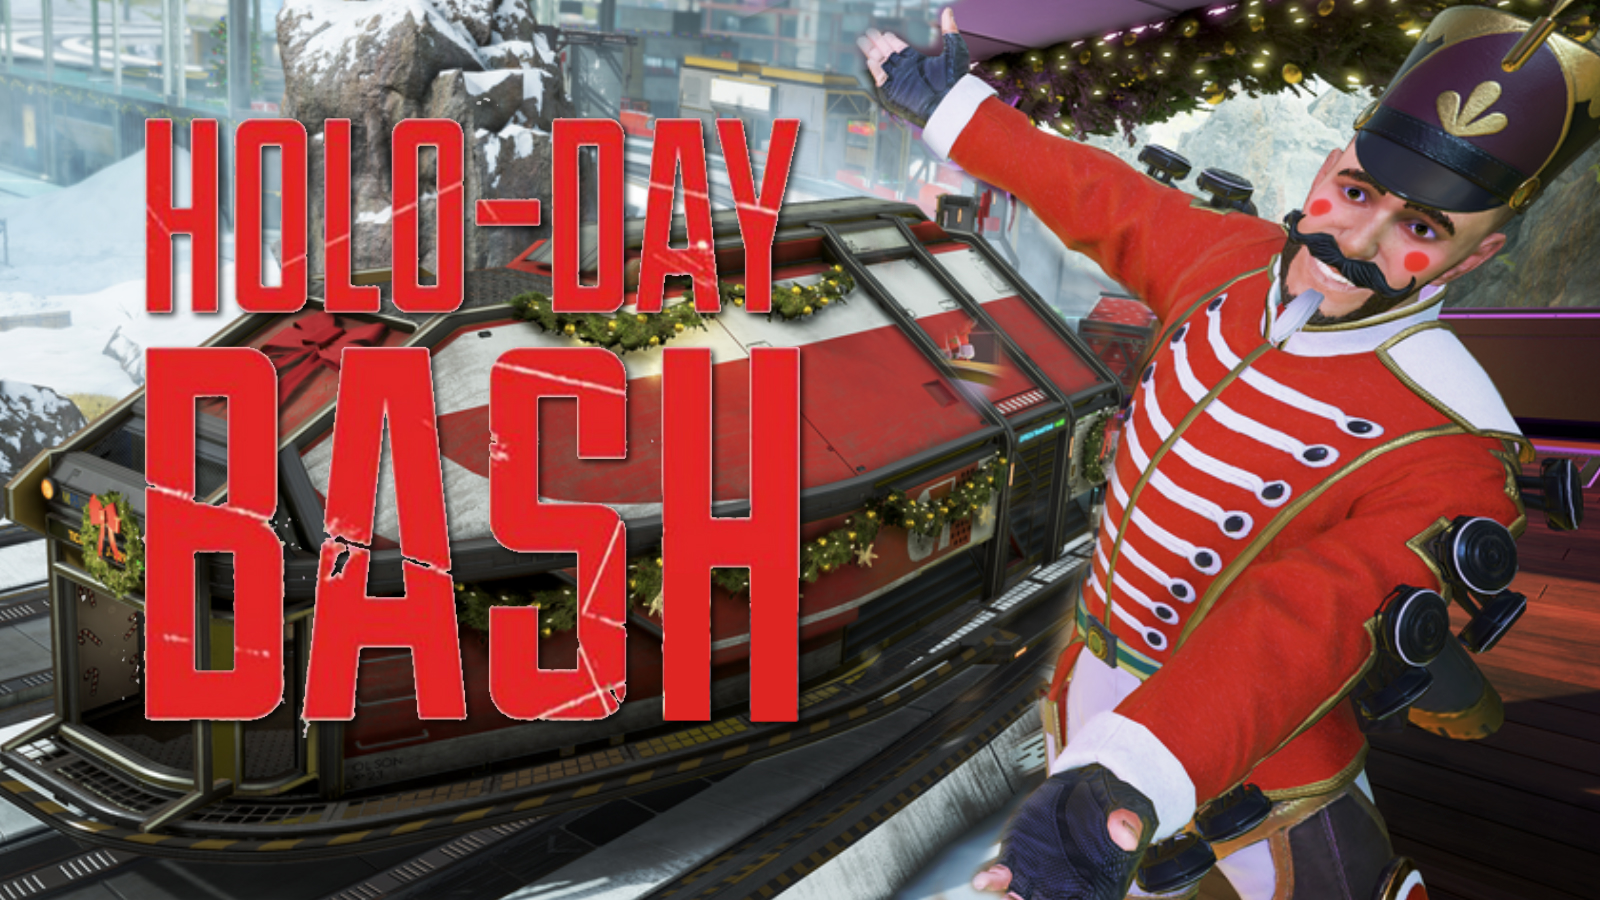 Mirage Holo-Day Bash in Apex Legends